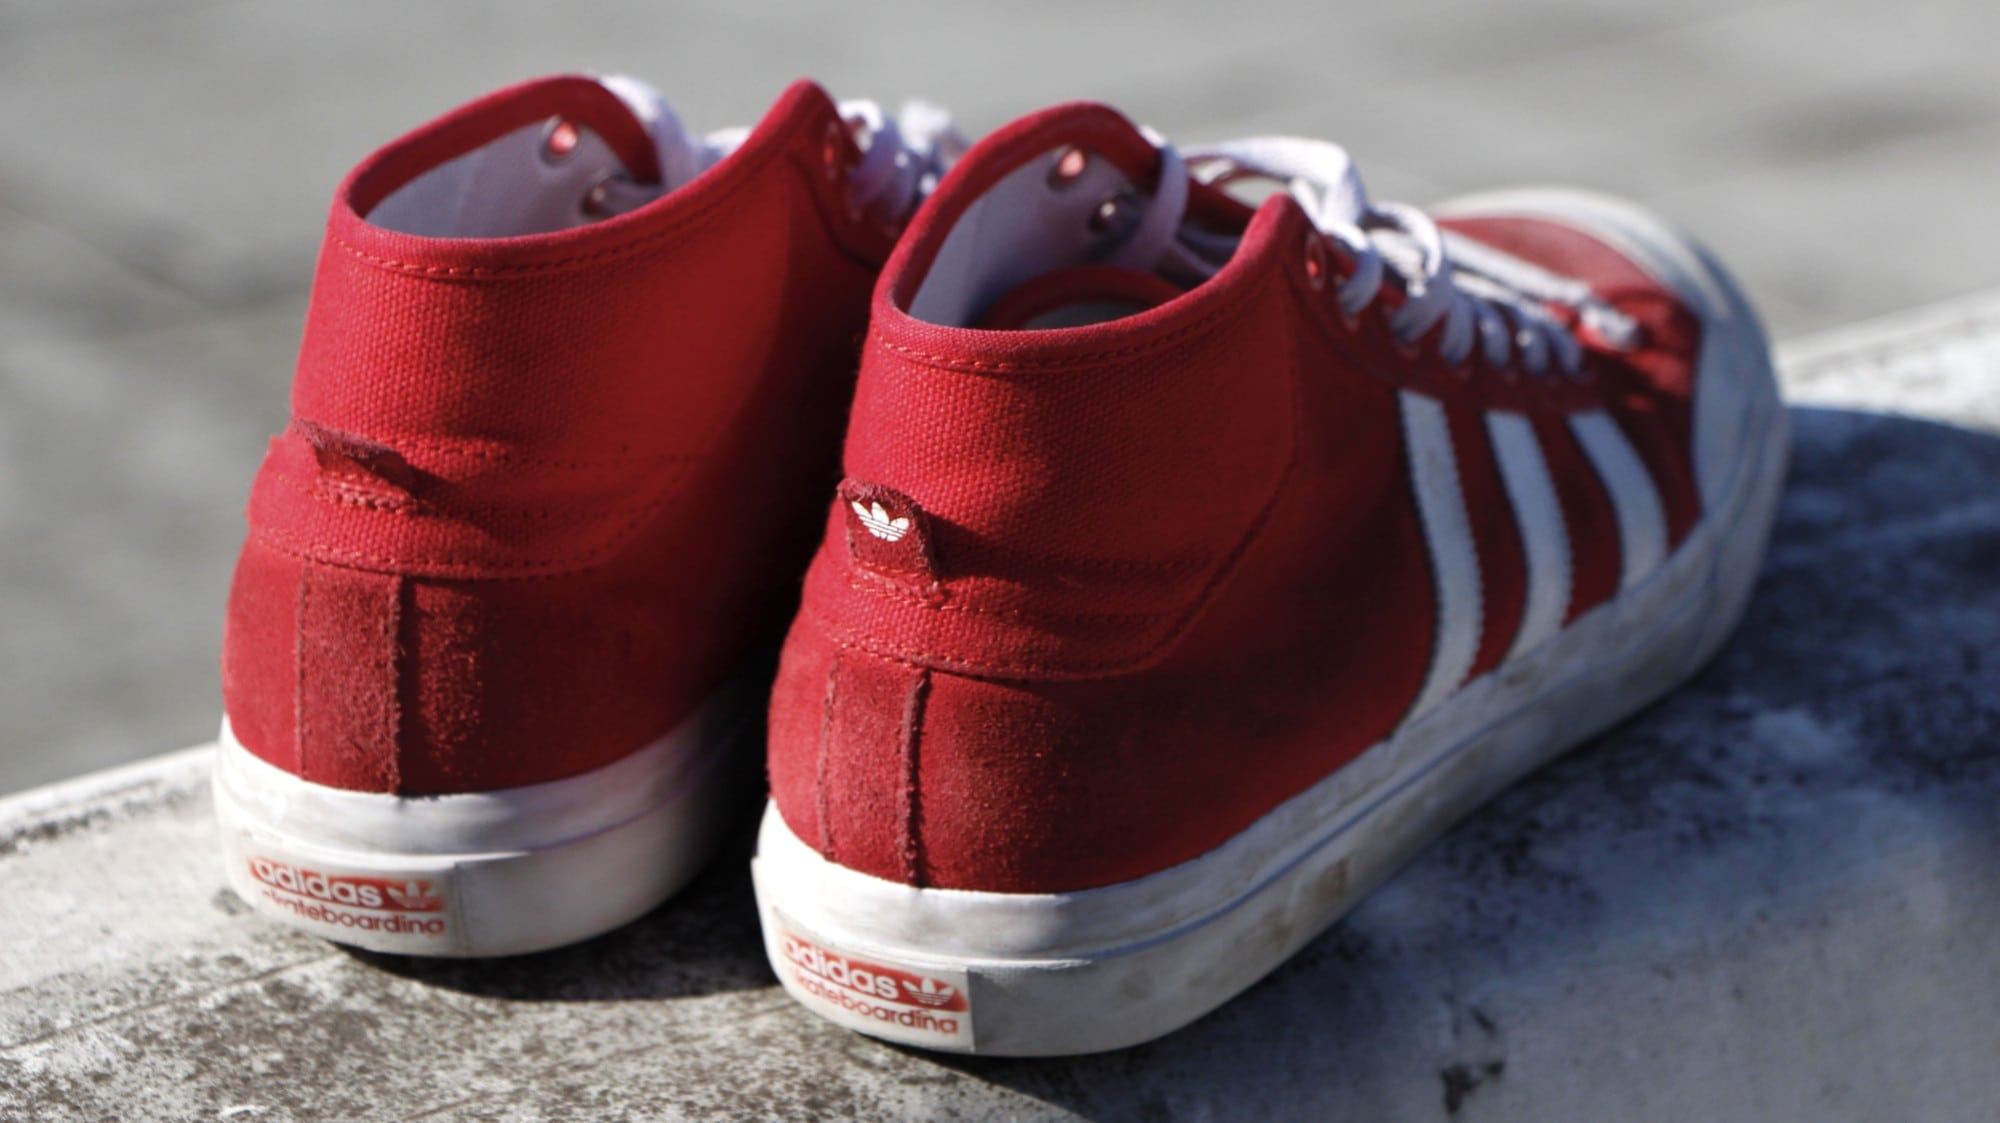 brand new 62393 3a4ae adidas Matchcourt Mid Skate Shoes Wear Test Review